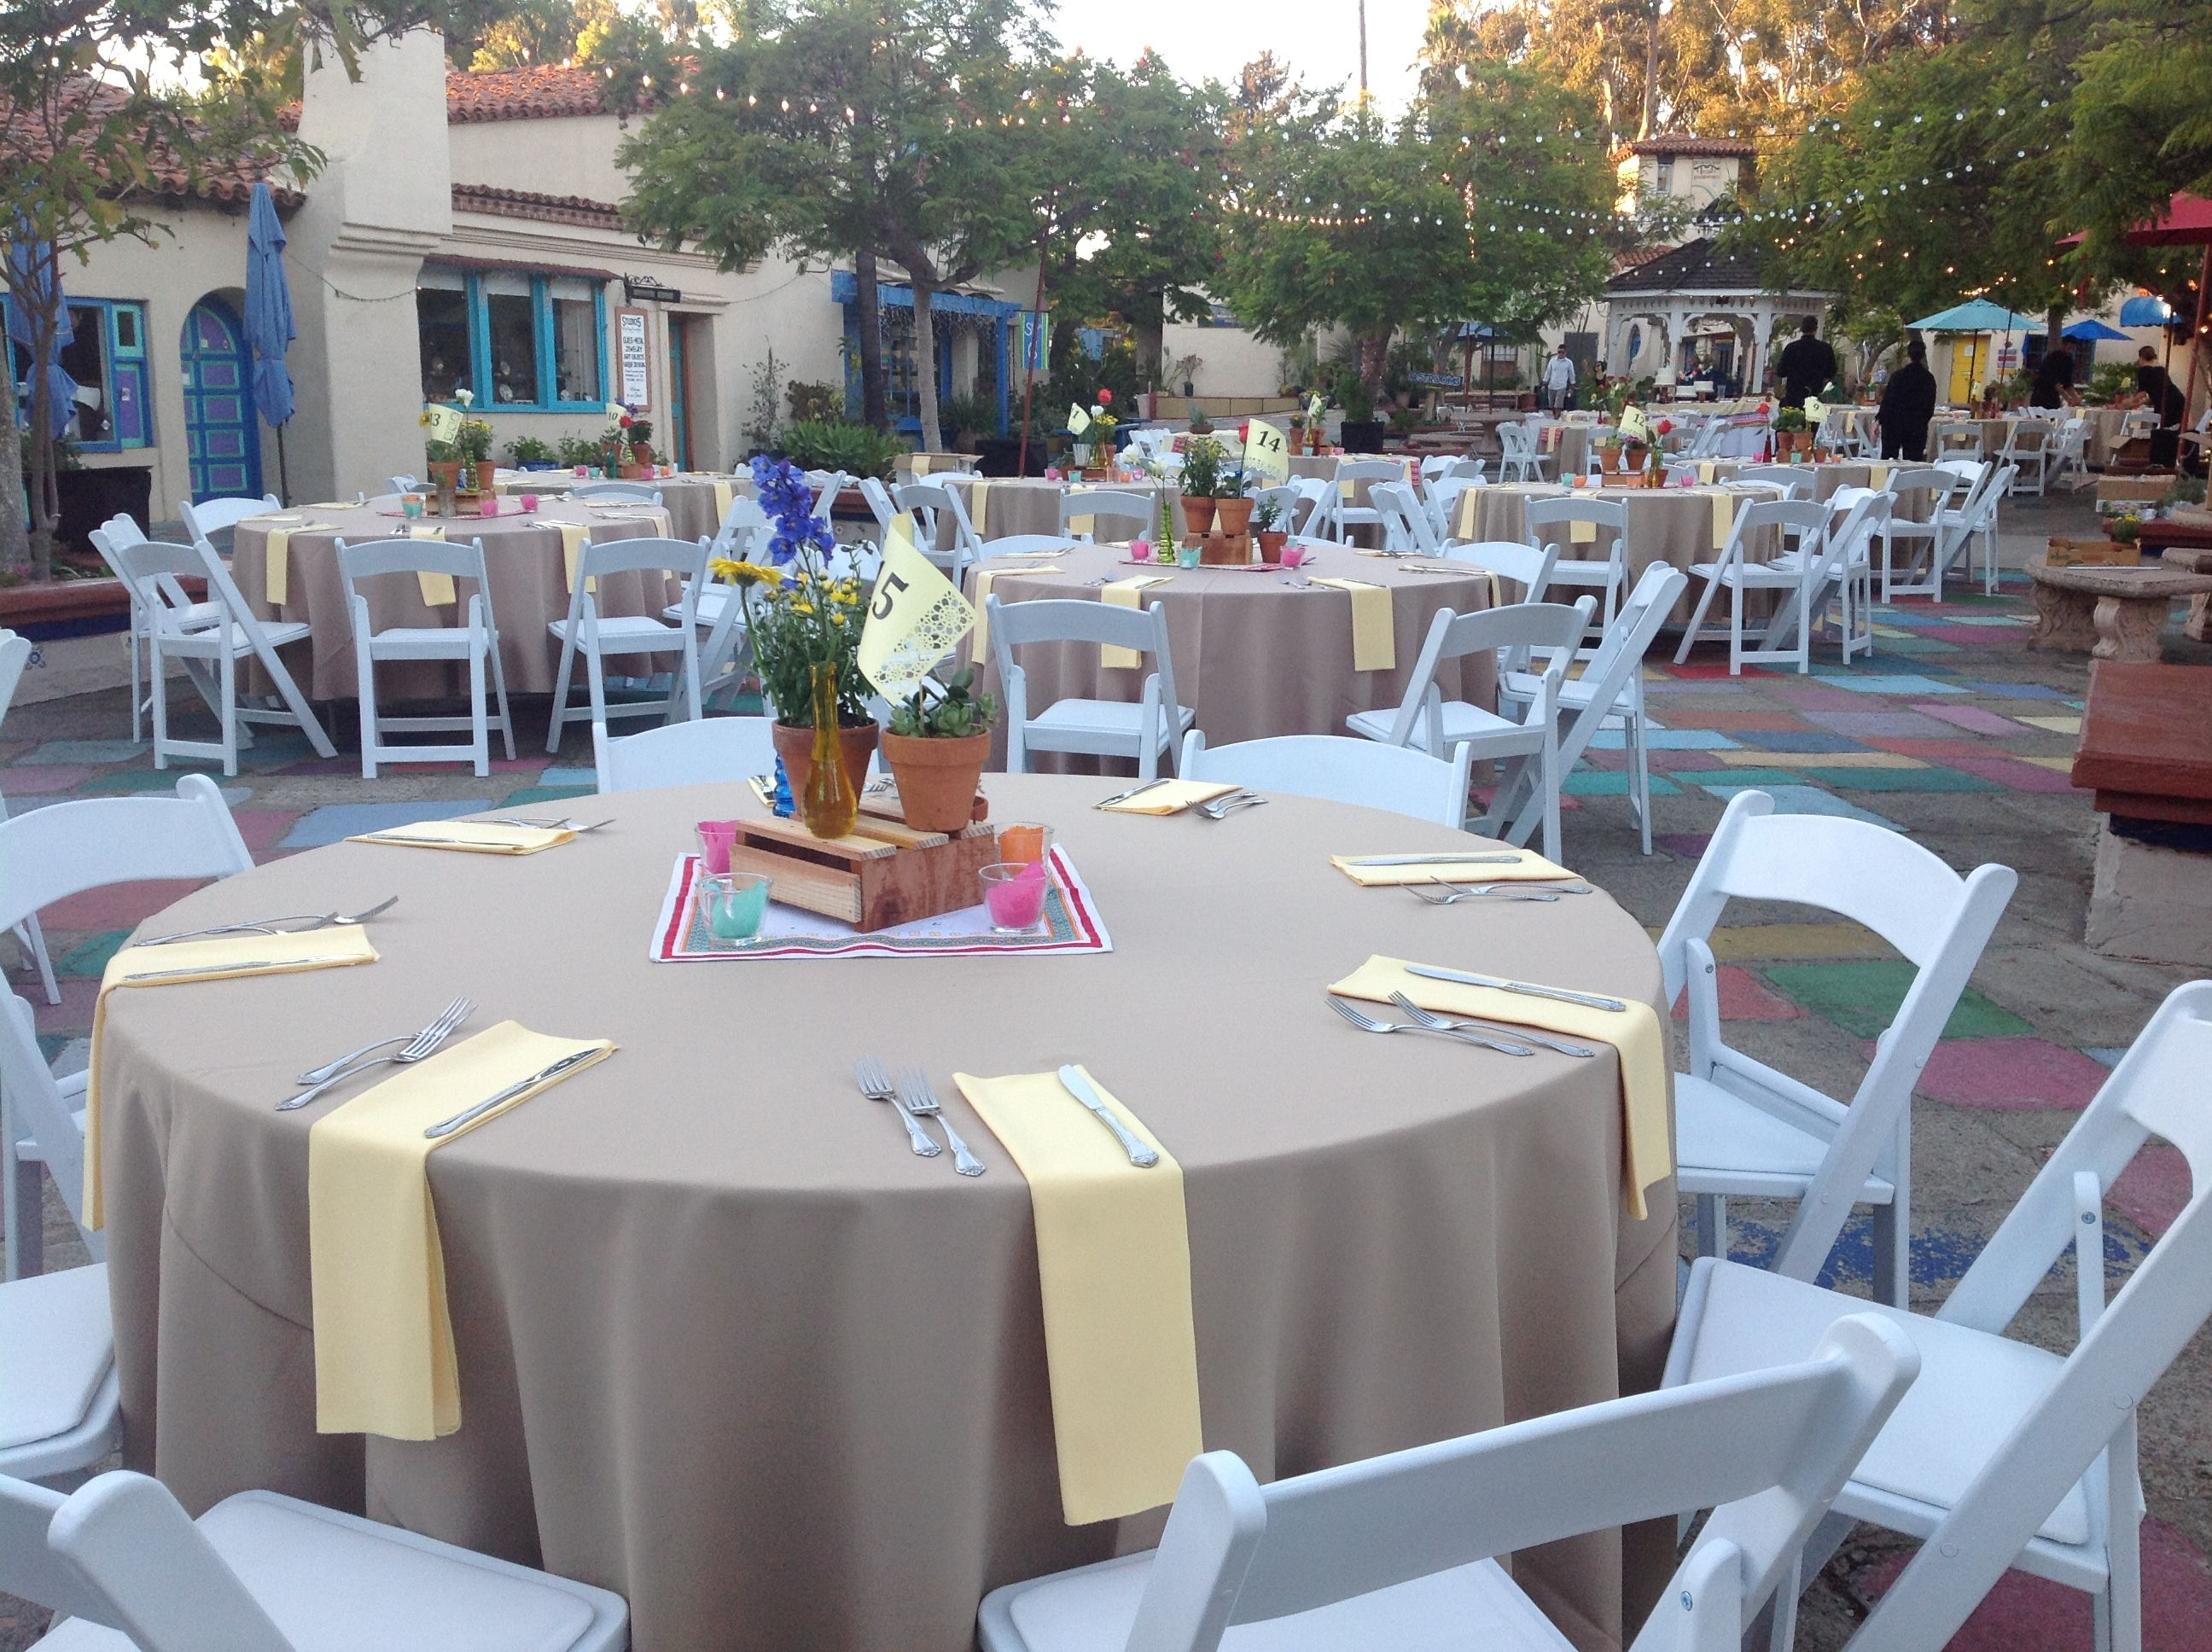 Spanish Village Art Center Wedding in Balboa Park Khaki linens